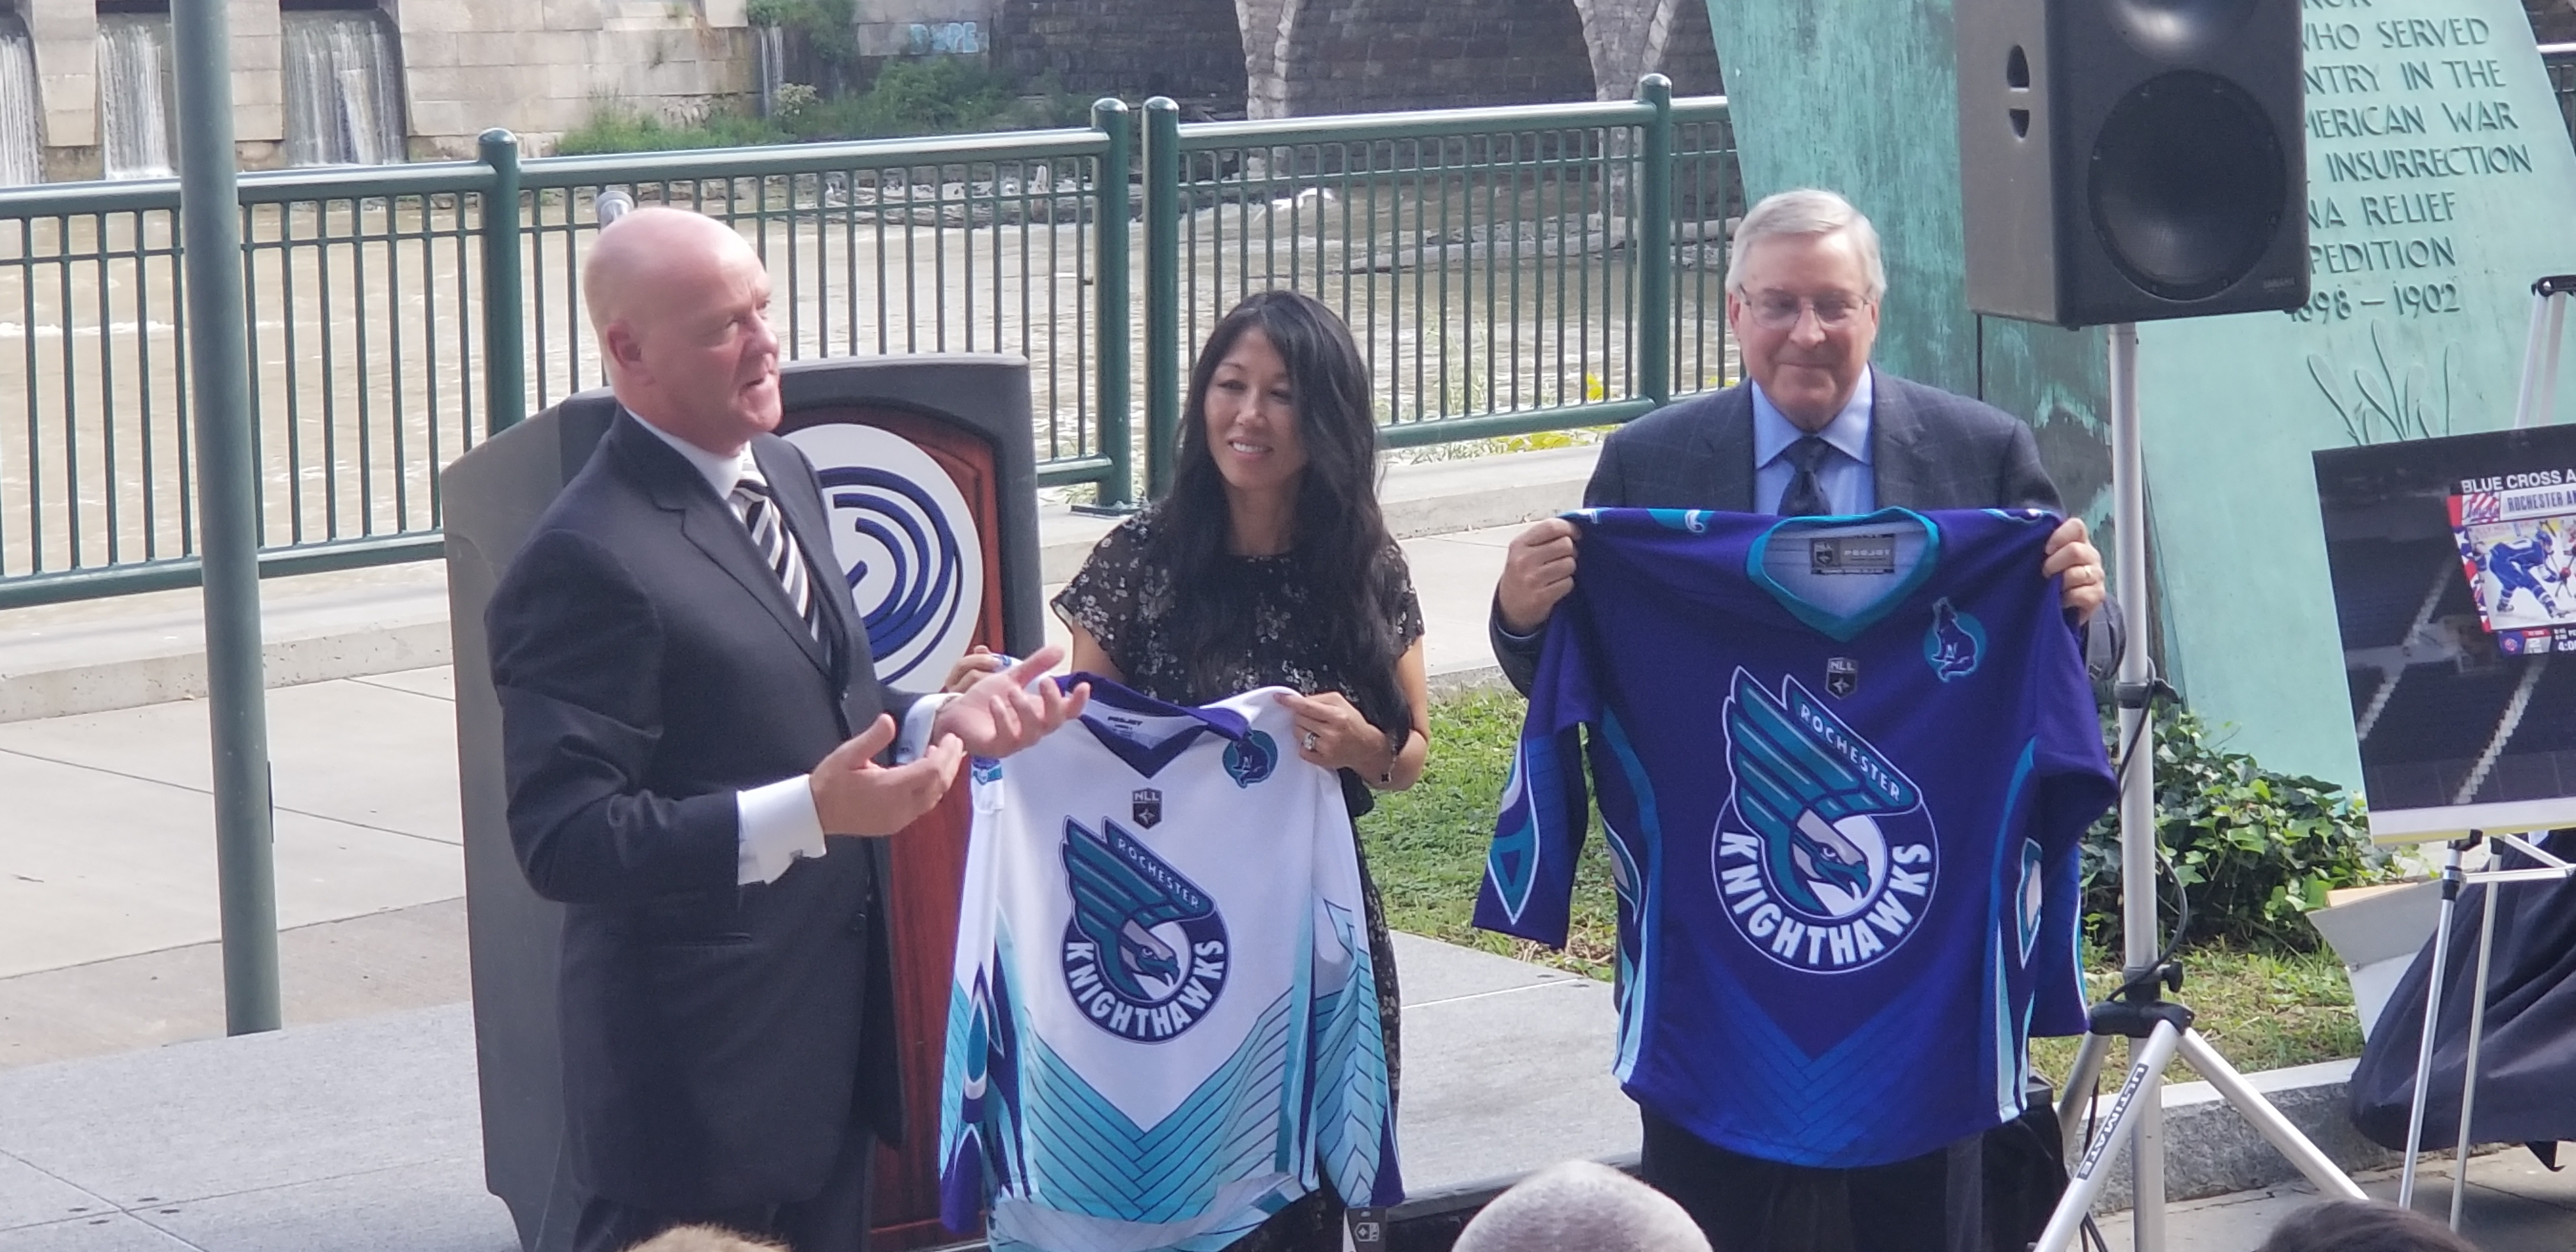 Knighthawks, Scoreboard, Restaurant and More Blue Cross Arena News